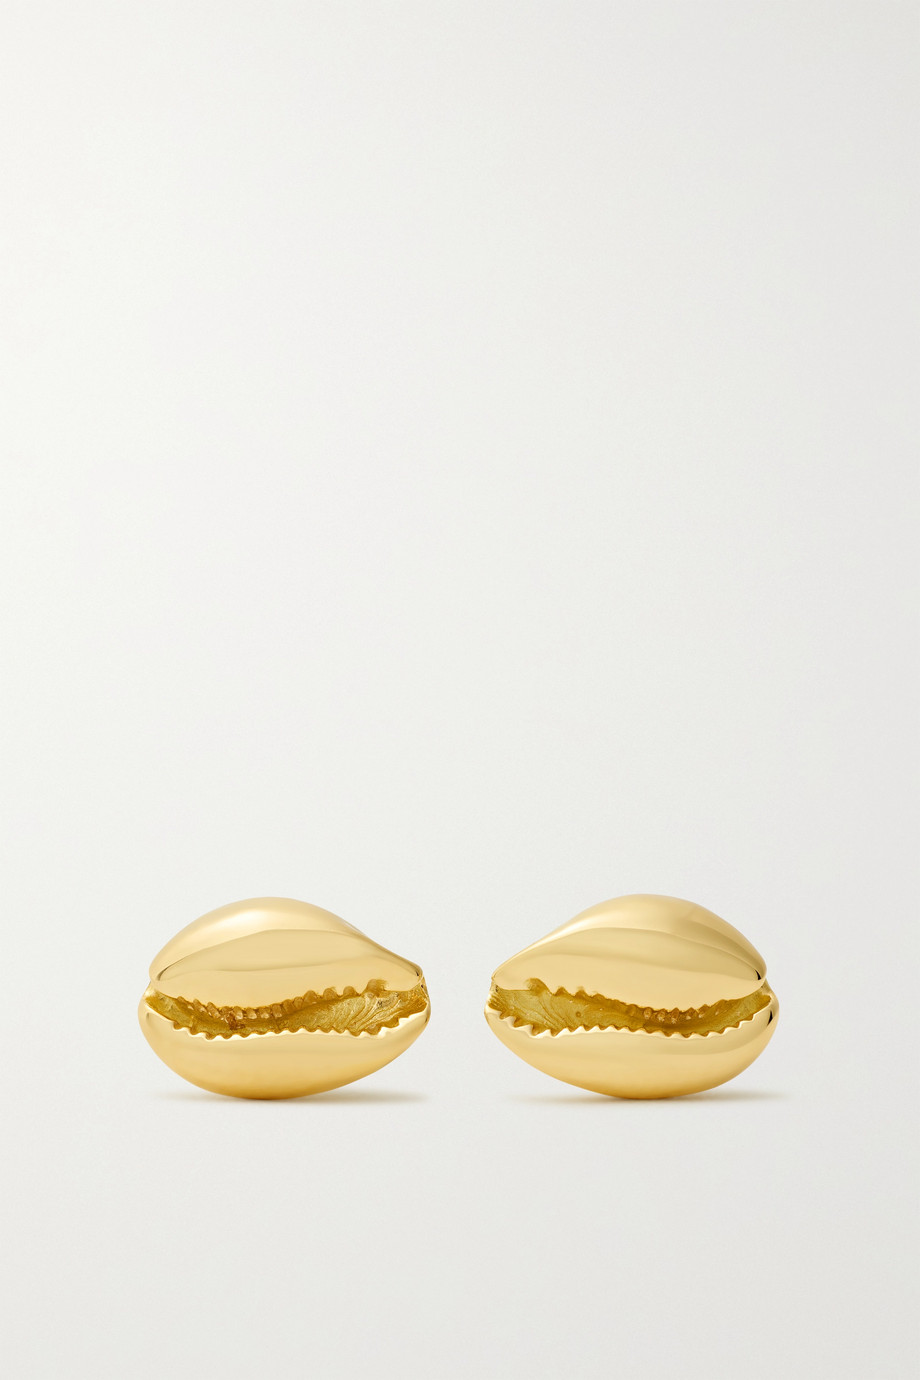 ALMASIKA Le Petit Cauri 18-karat gold earrings